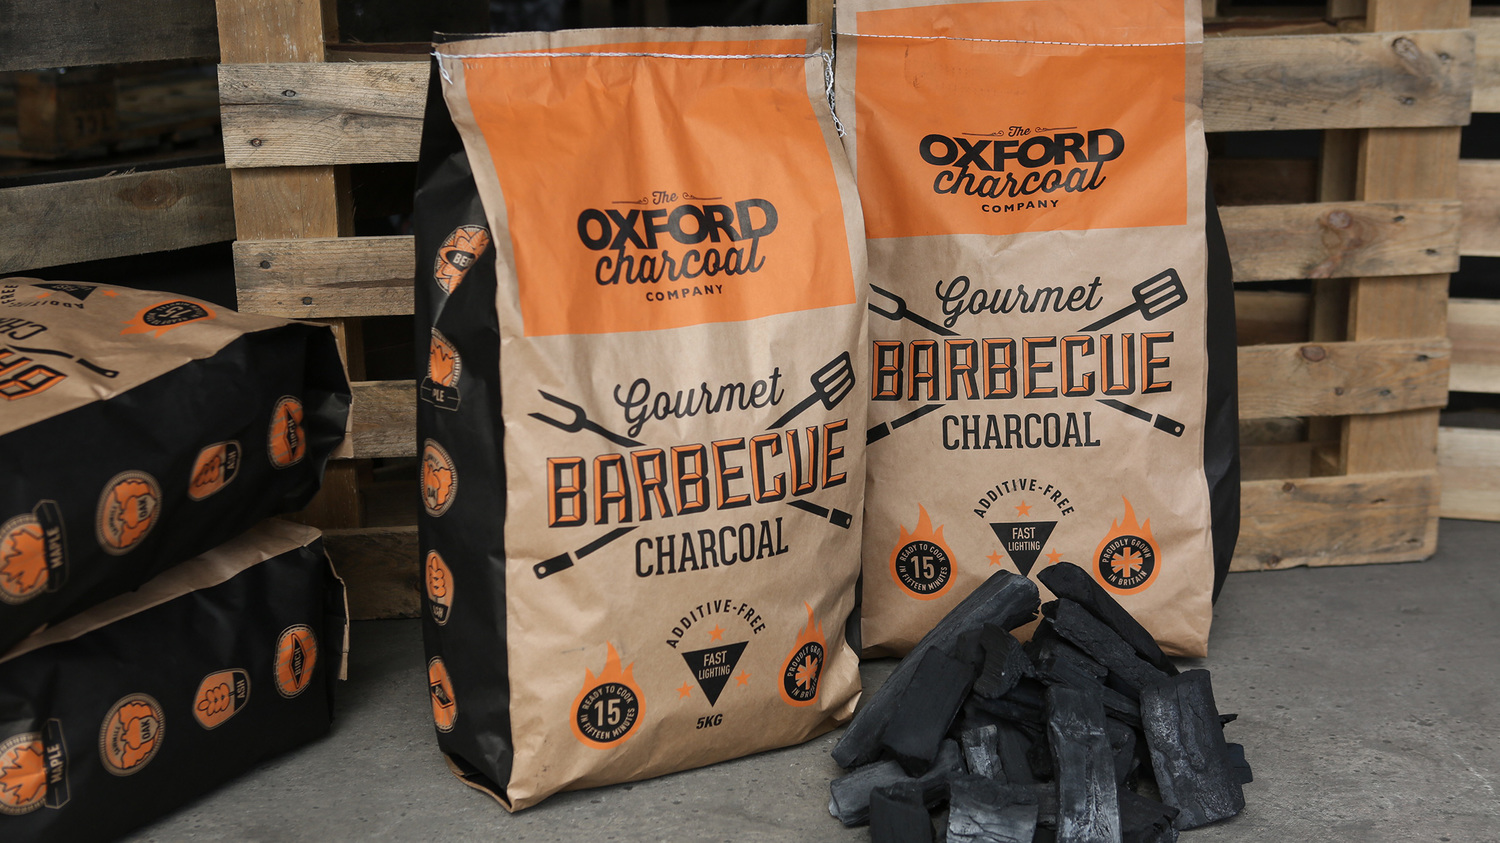 At the Oxford Charcoal Company, we've been perfecting our charcoal-making  to bring you clean-burning, untainted, single or mixed species premium  lumped ...